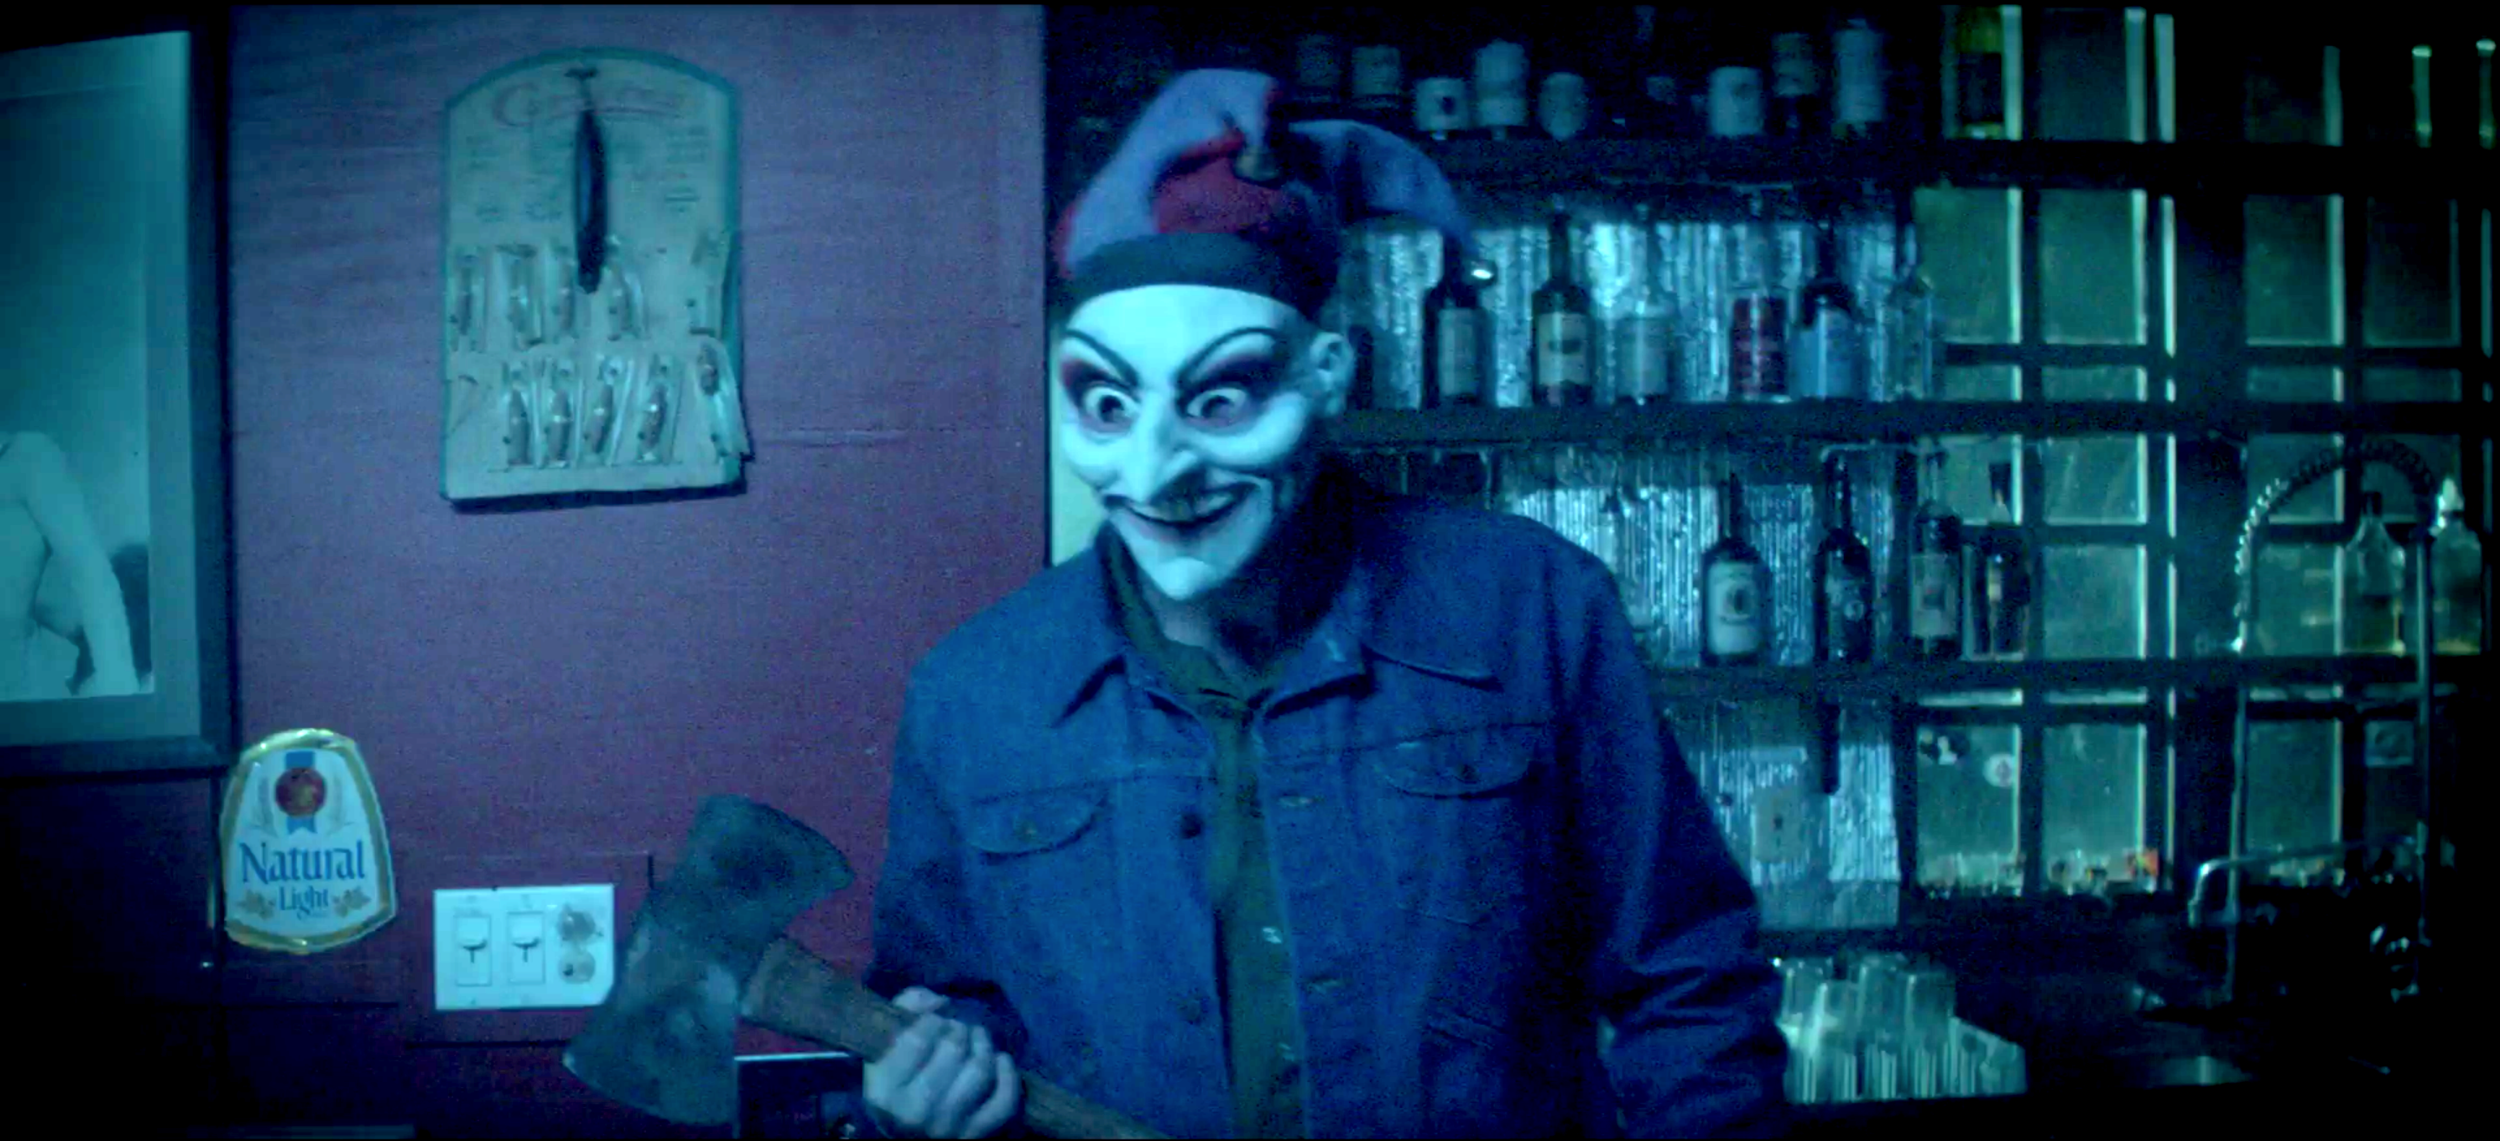 This is one of the dudes who broke into Delroy's when he was a kid. Yeah, they were all kinda creepy lookin'.